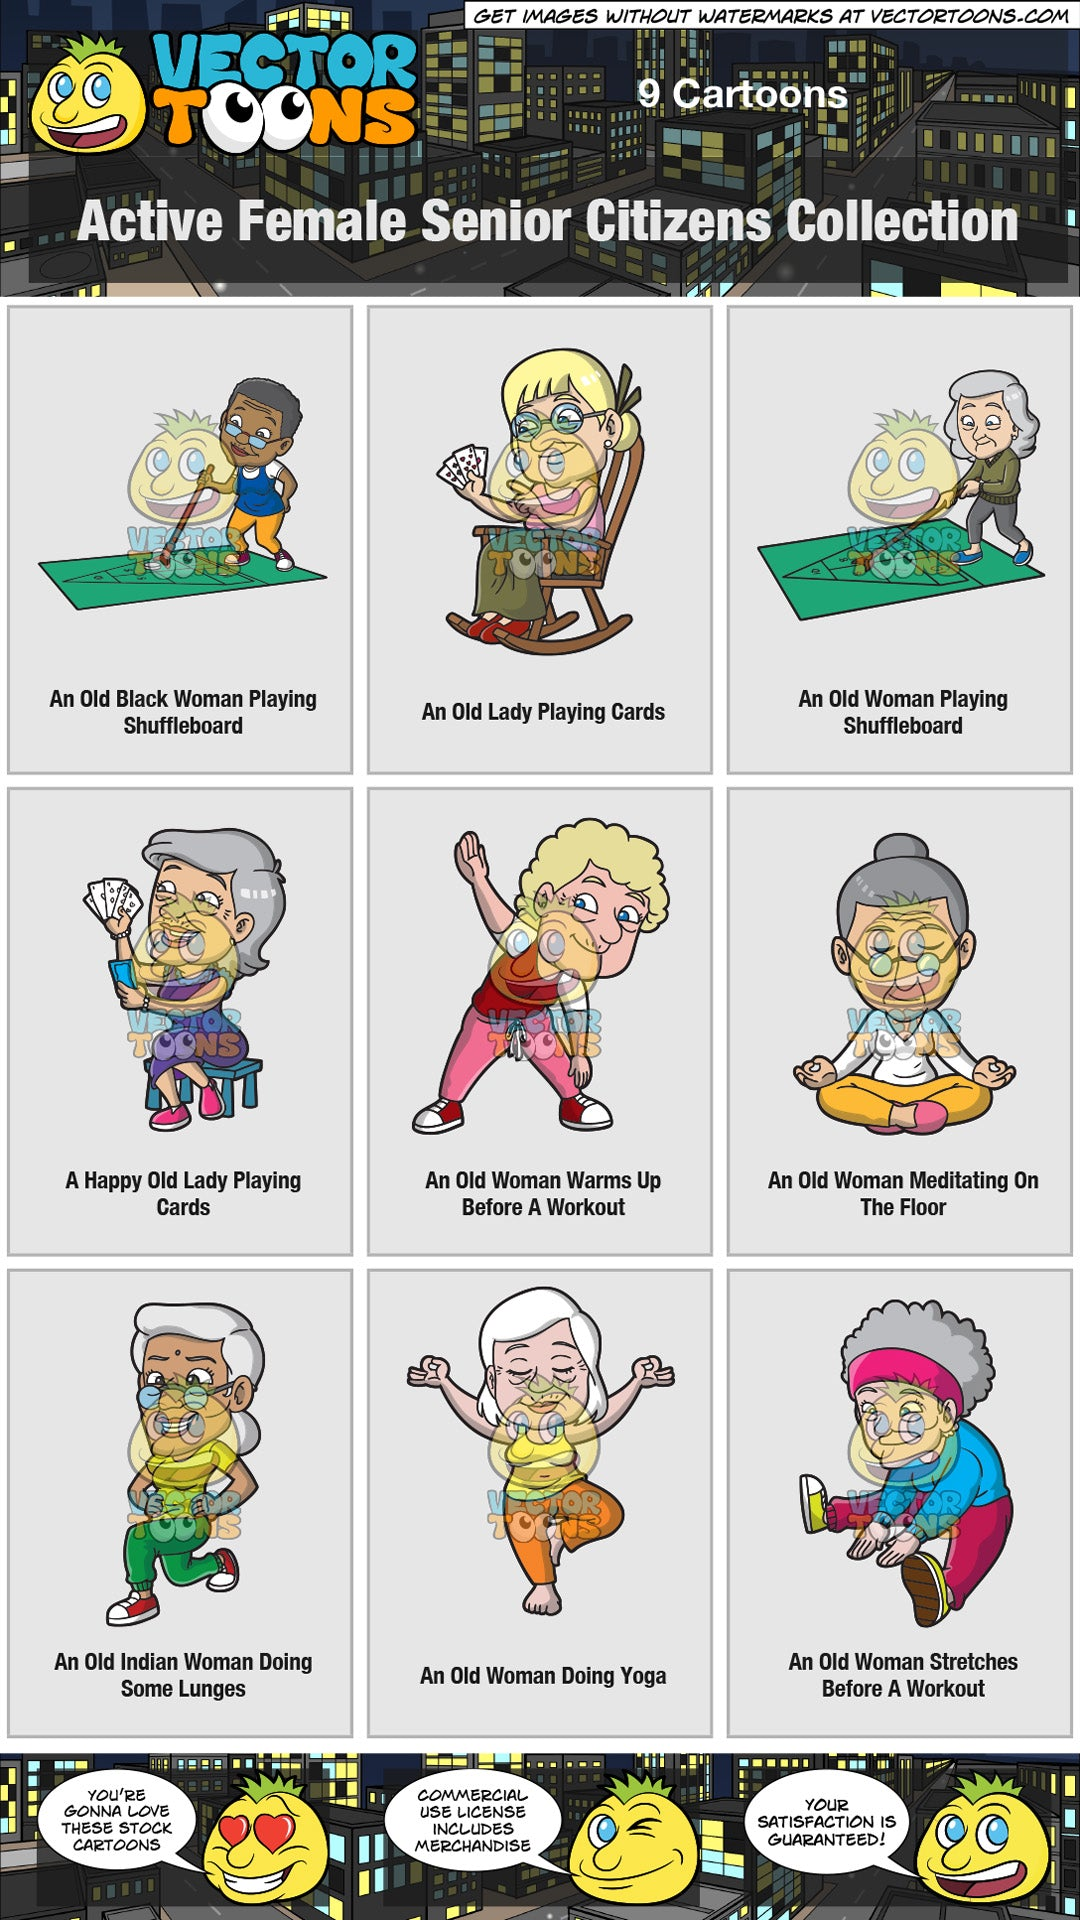 Active Female Senior Citizens Collection